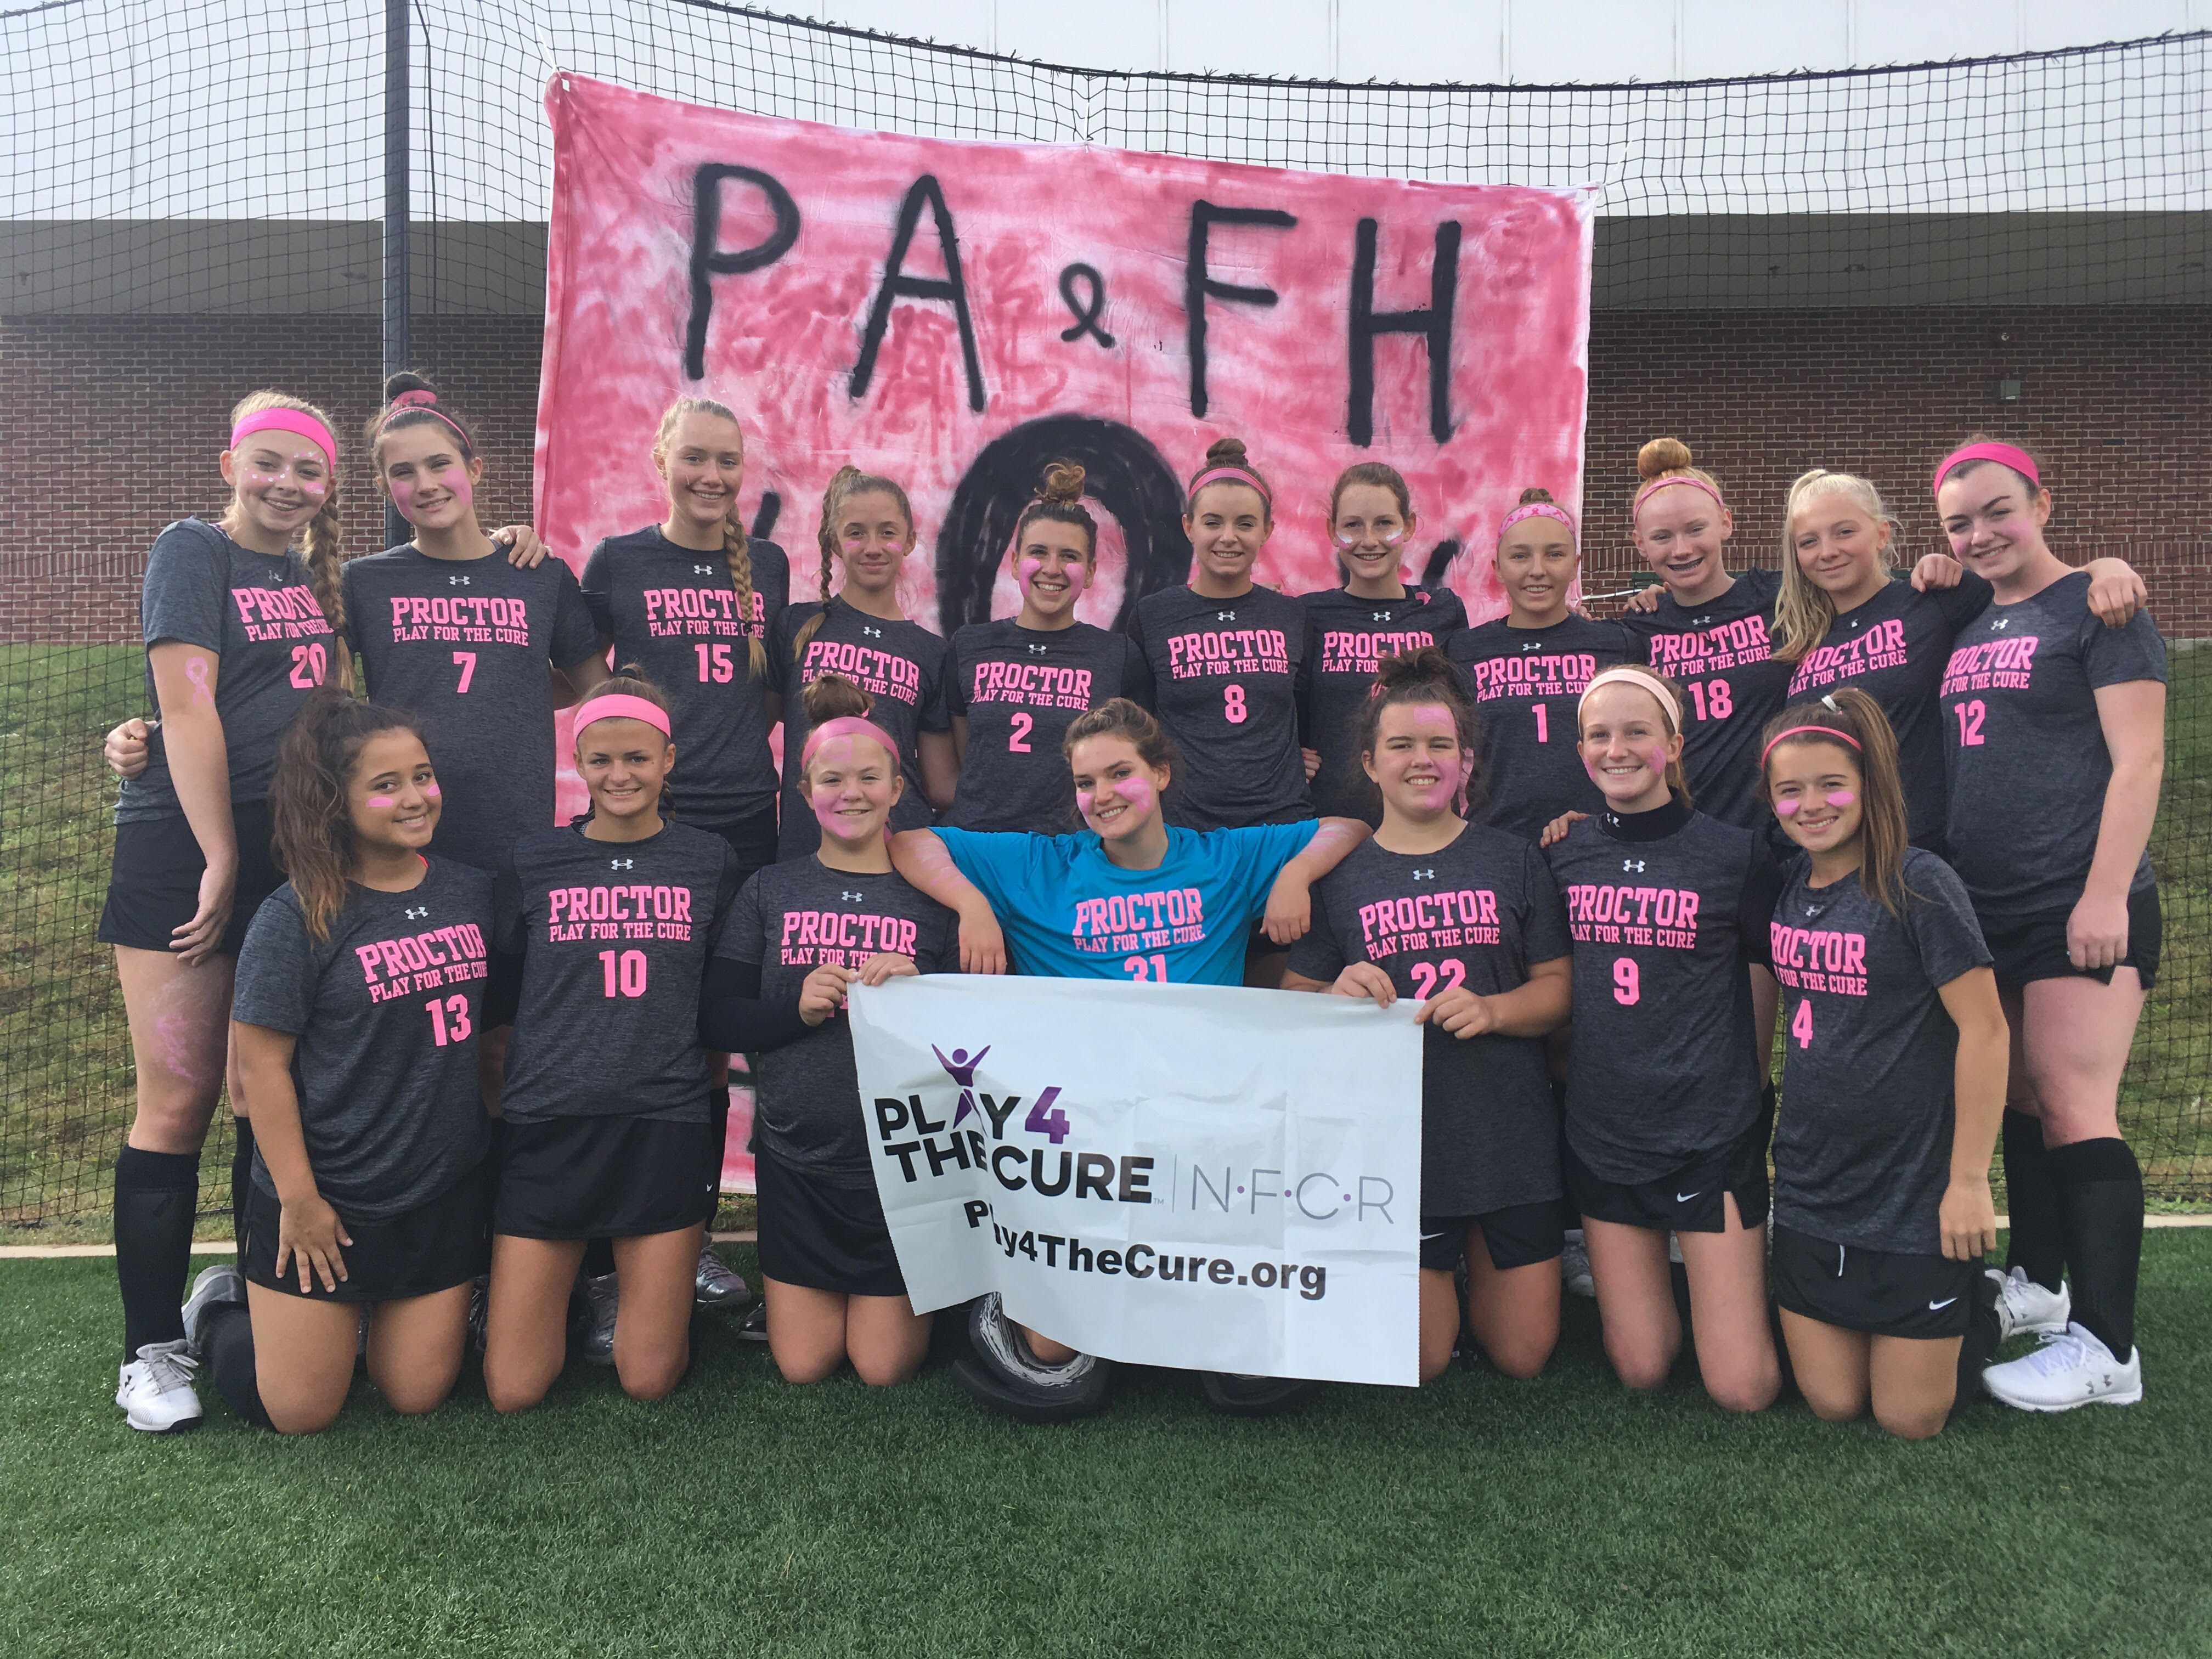 Play4Cure FH 2018